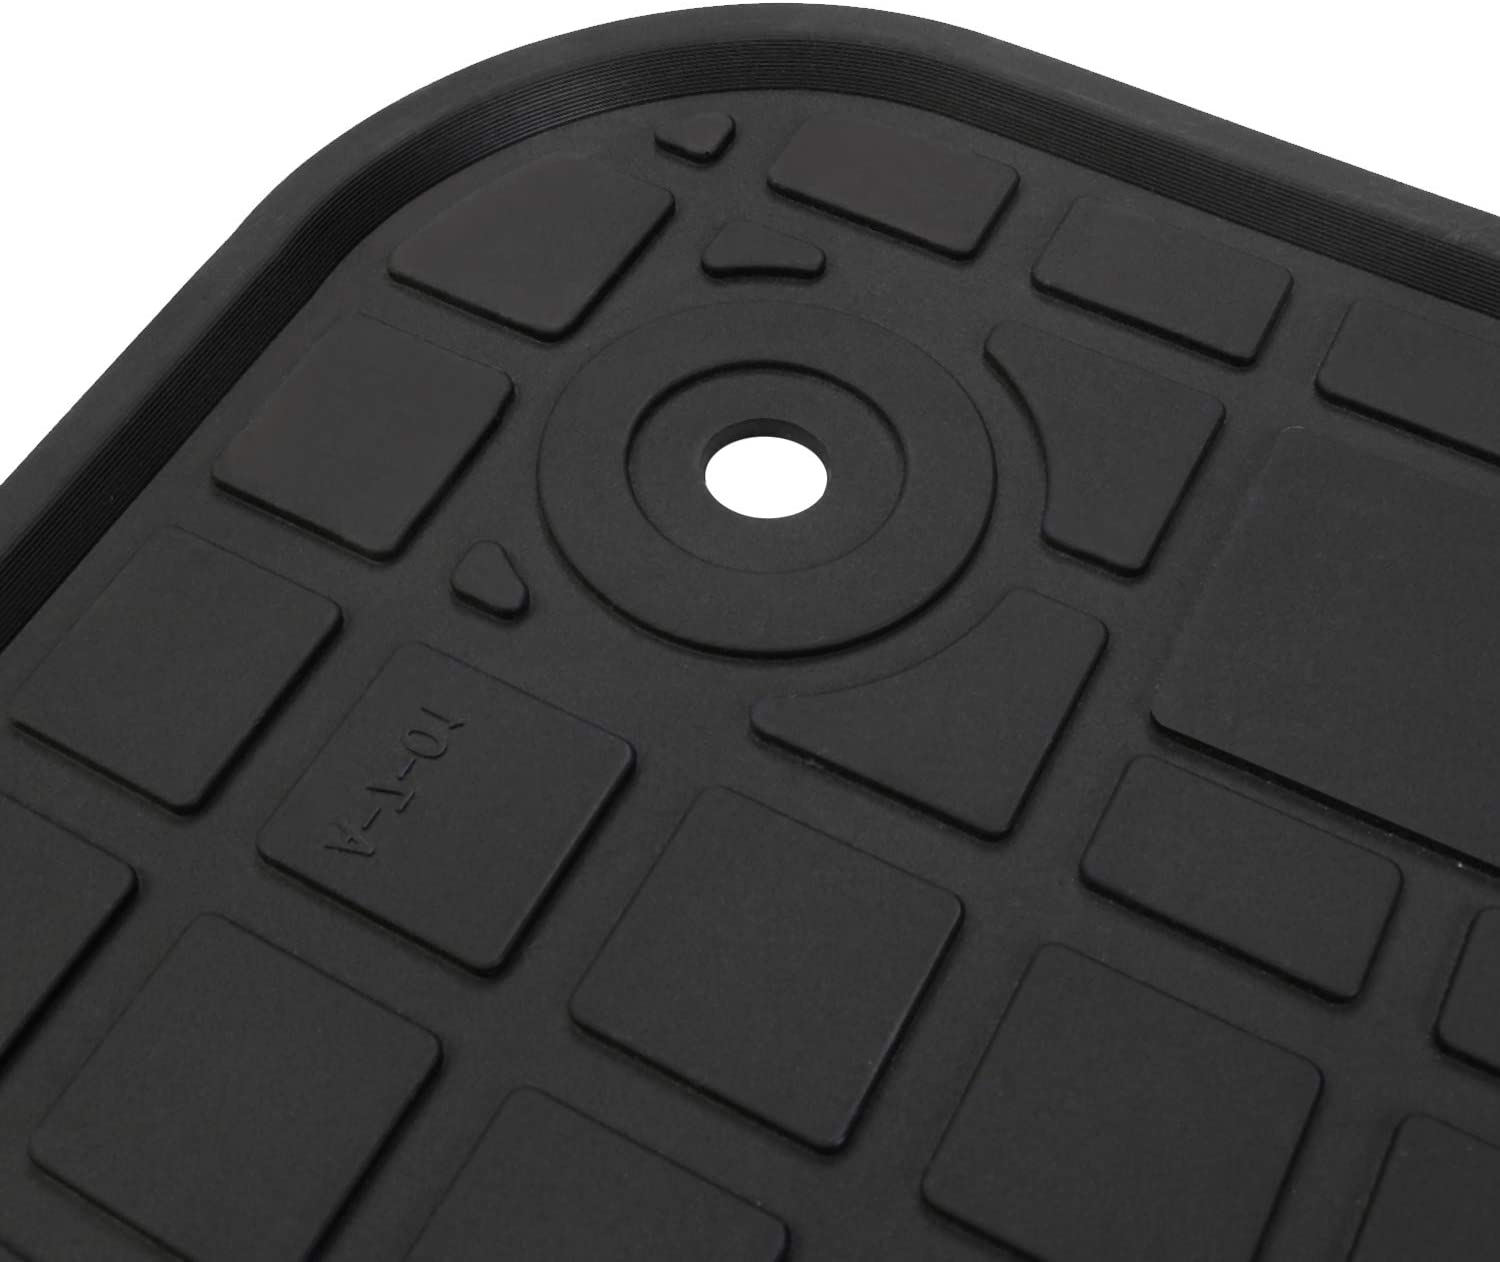 San Auto Car Floor Mat Rubber Custom Fit for for Audi Q7 2016 2017 2018 2019 Black Red Auto Floor Liners All Weather Heavy Duty Odorless